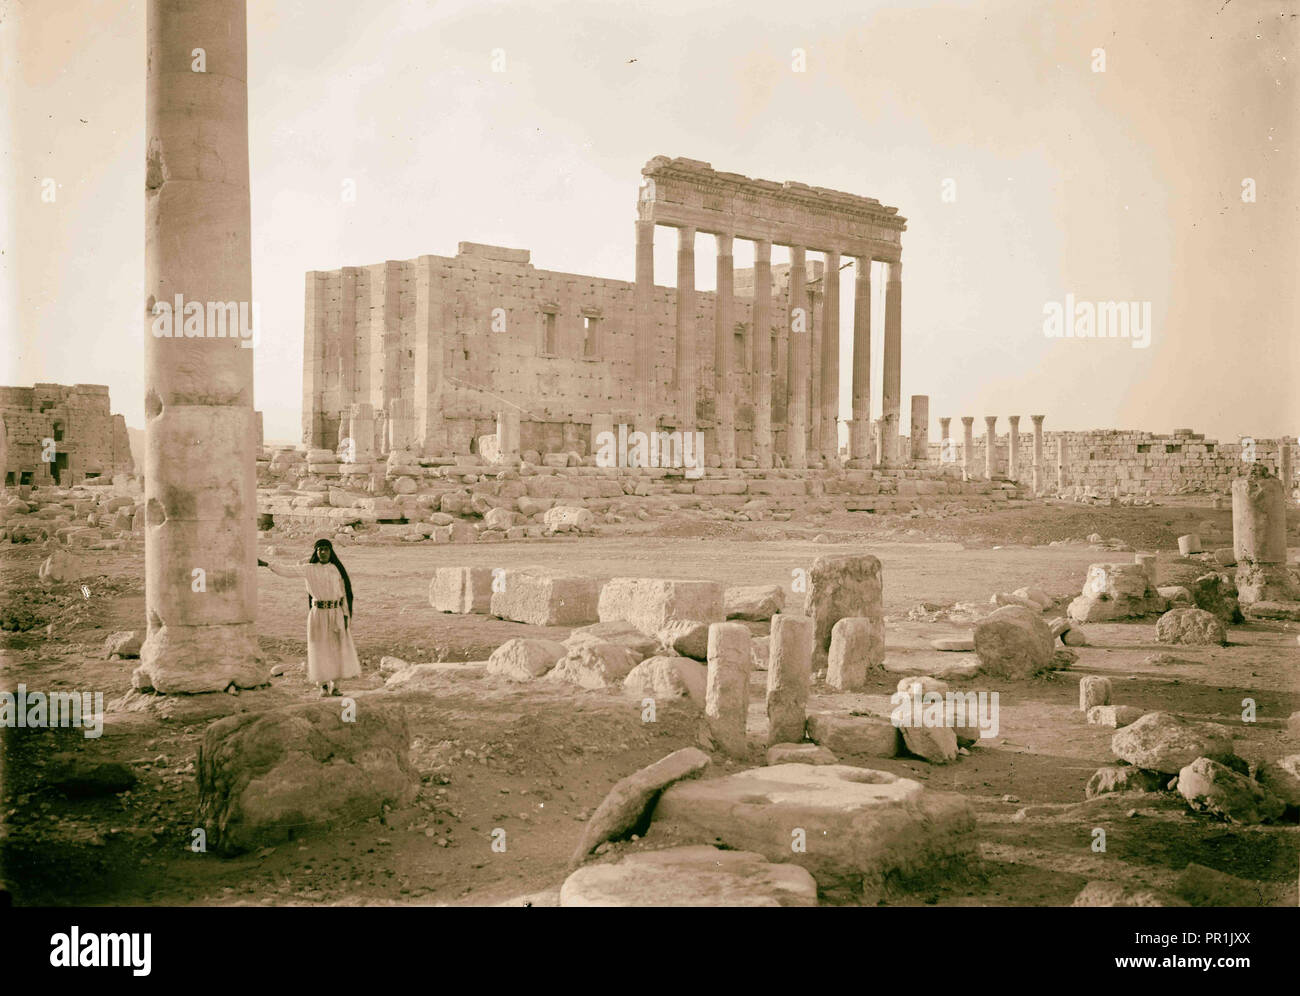 Palmyra. Temple of Baal. Eastern fa ade showing columns of the peristyle. 1920, Syria, Tadmur - Stock Image